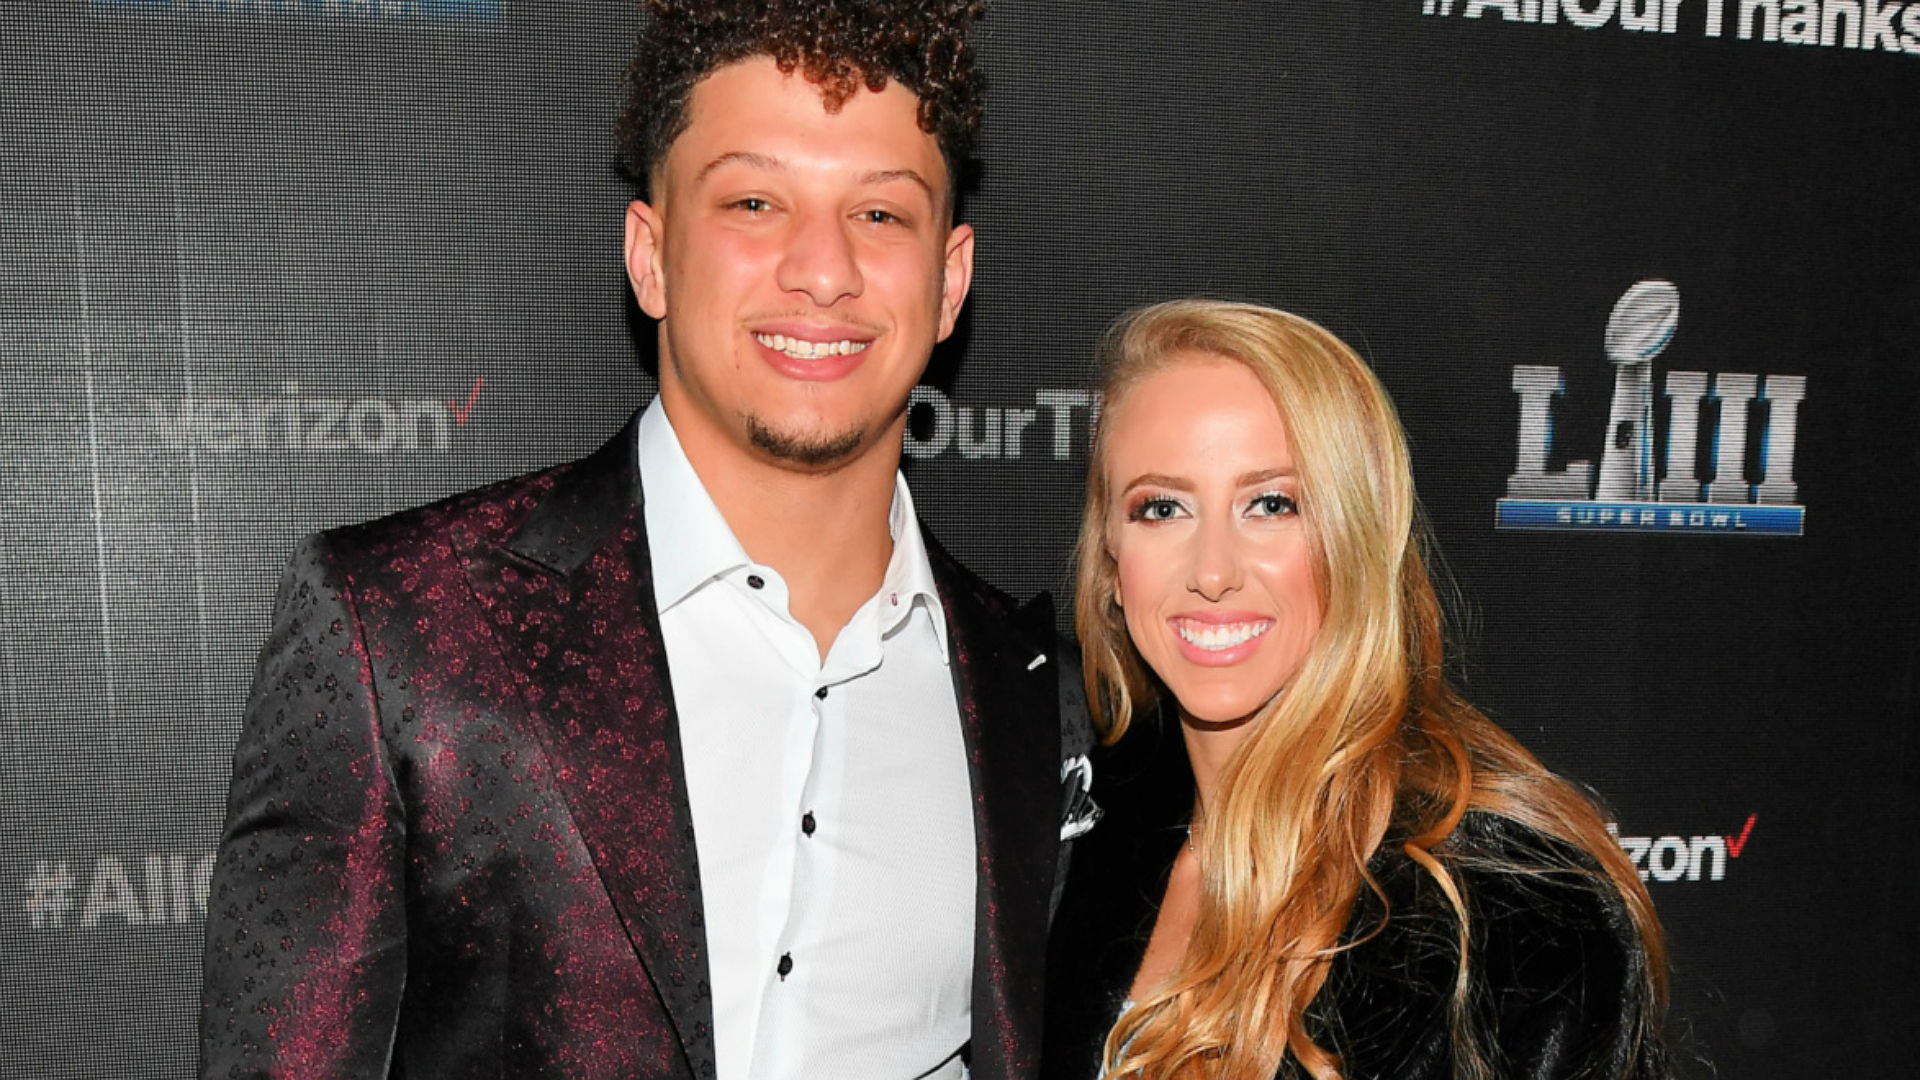 Patrick Mahomes Fiancee Brittany Matthews Announce First Child On The Way Sporting News